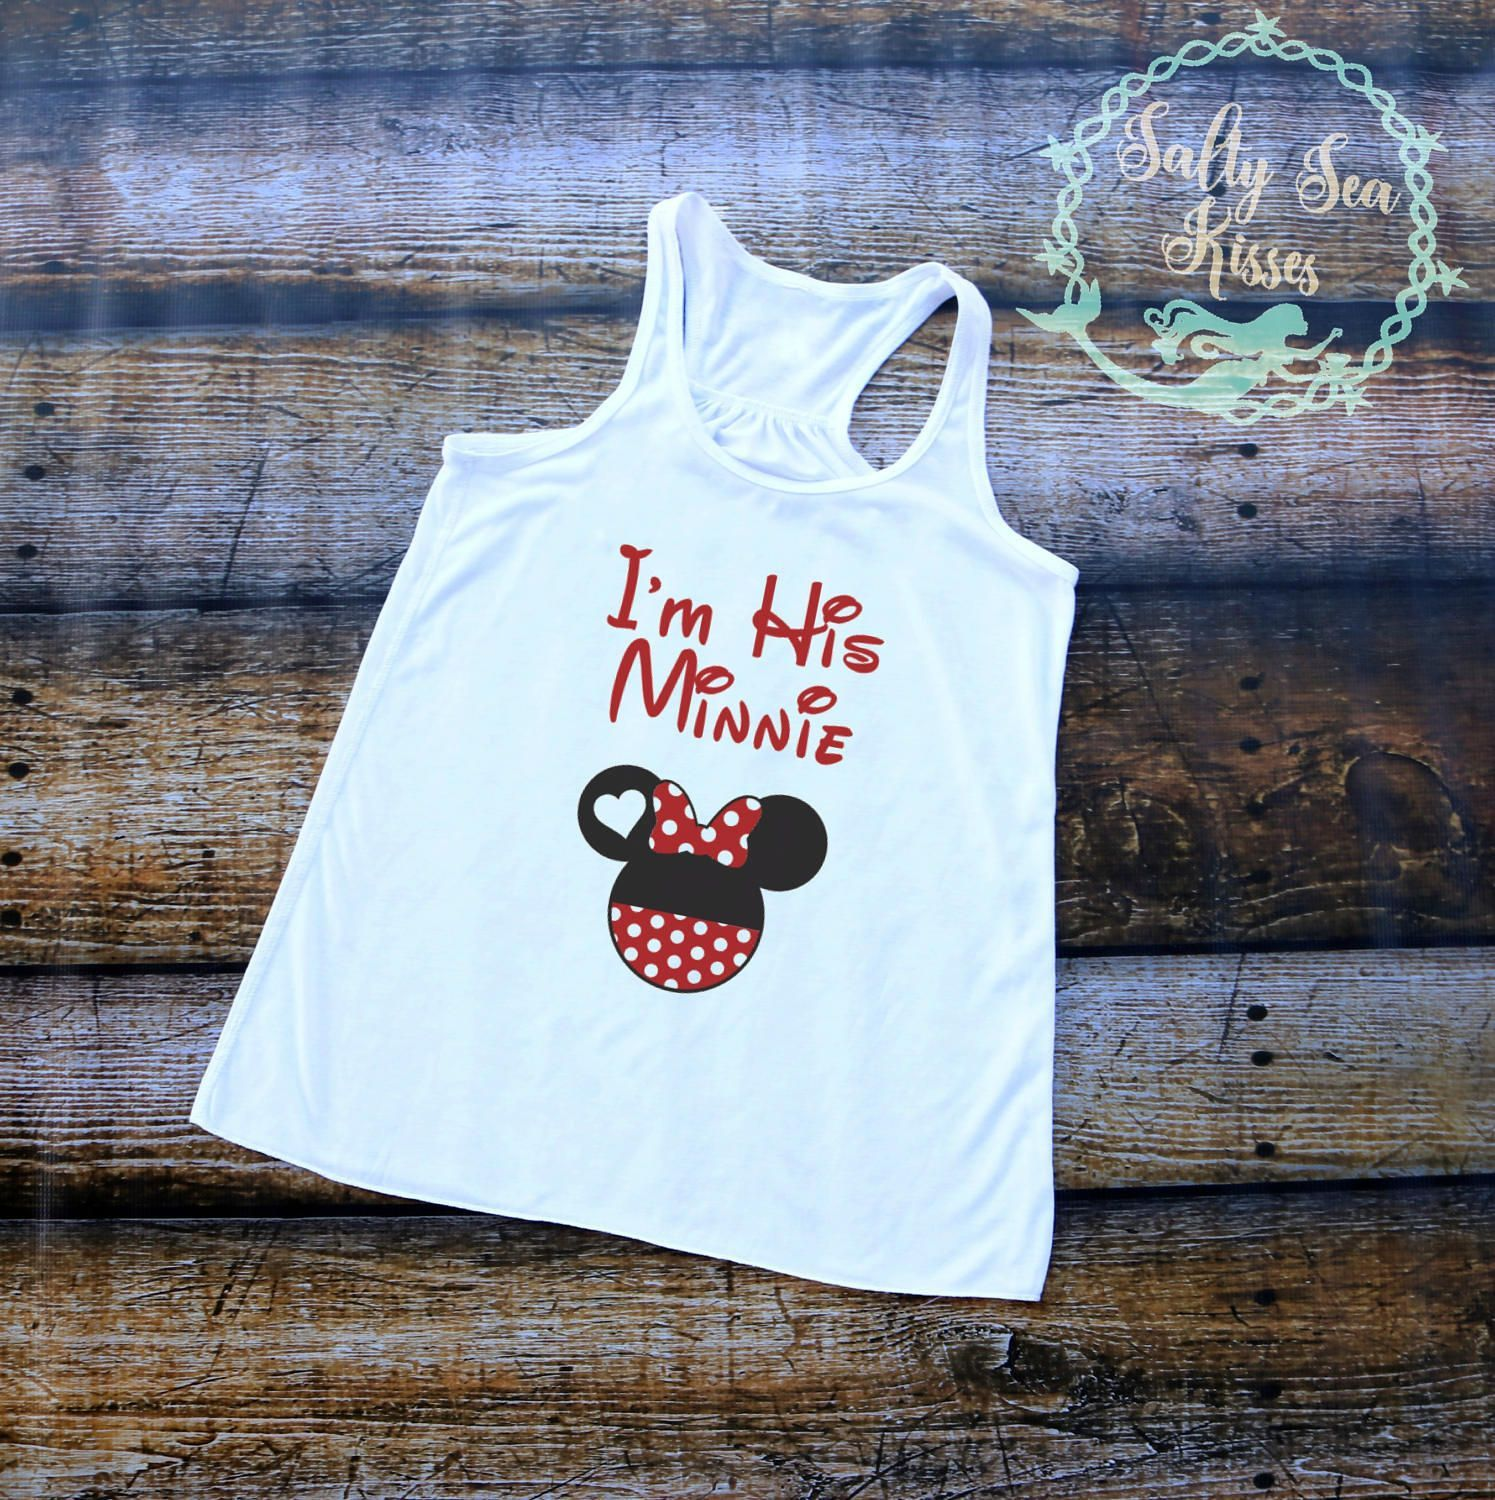 I'm His Minnie Women's Tank Top- Minnie Mouse Tank Top- Disney World Women's Tank Top by SaltySeaKisses on Etsy